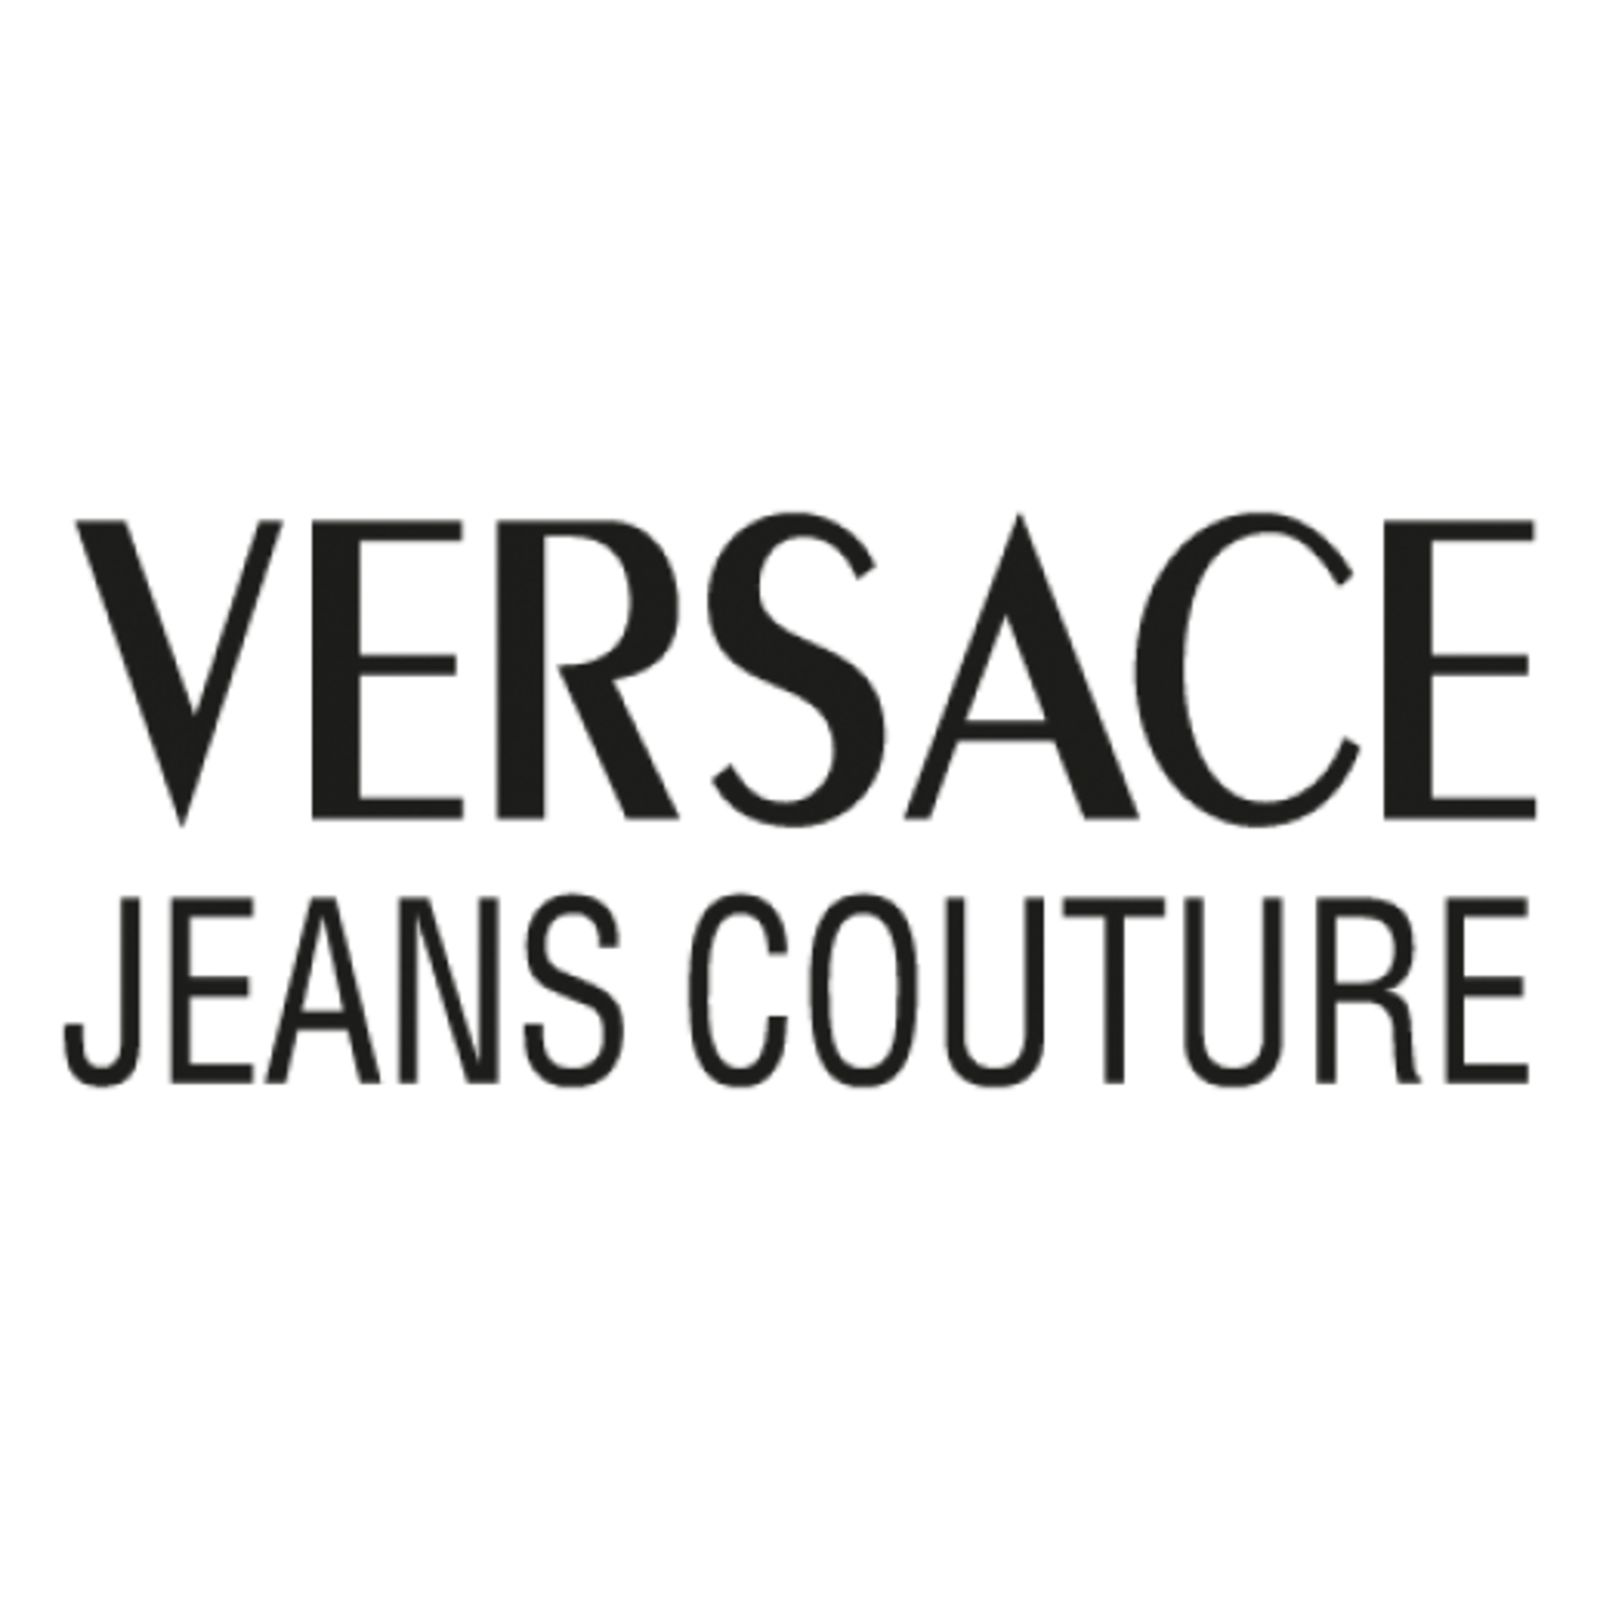 VJC VERSACE JEANS COUTURE (Image 1)